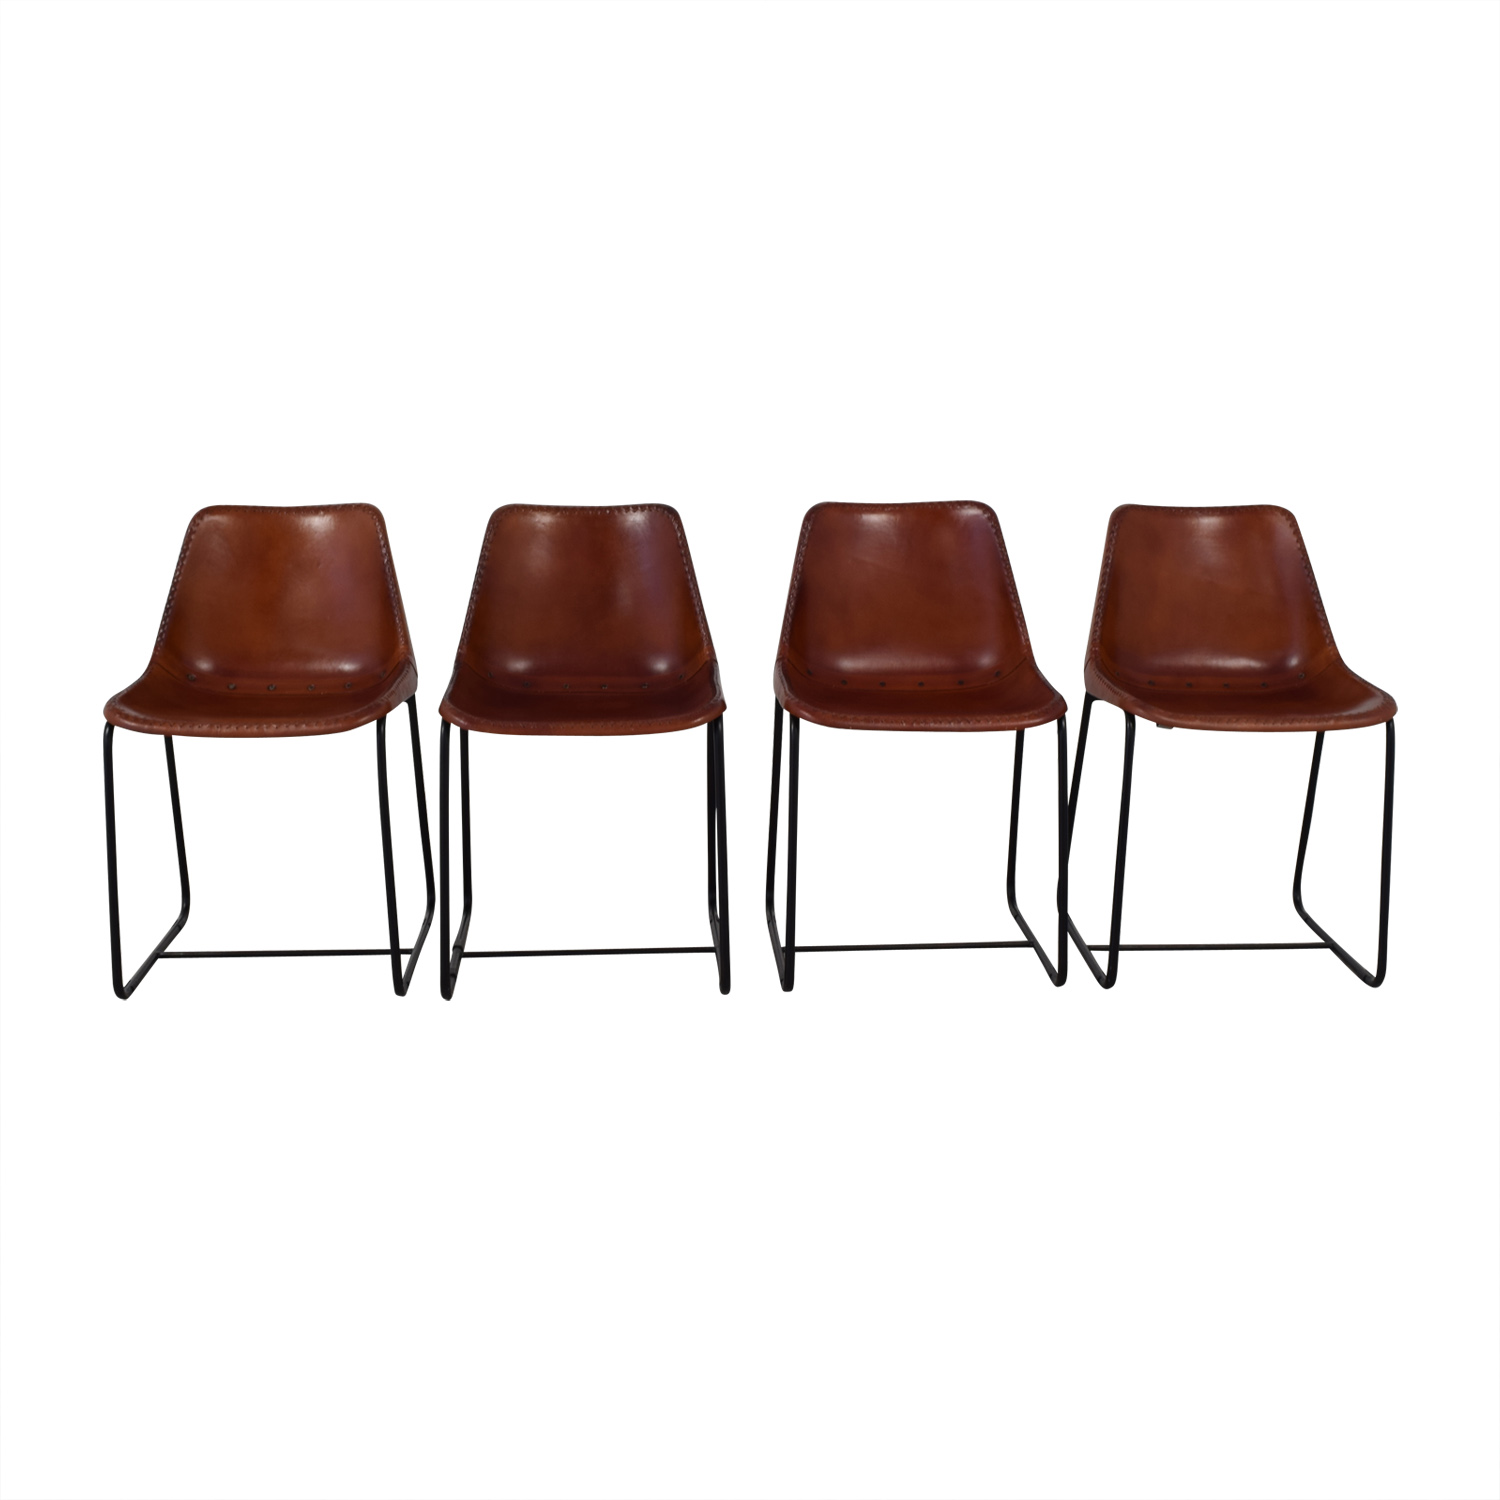 Superieur 54 Off Cb2 Cb2 Roadhouse Leather Chairs Chairs